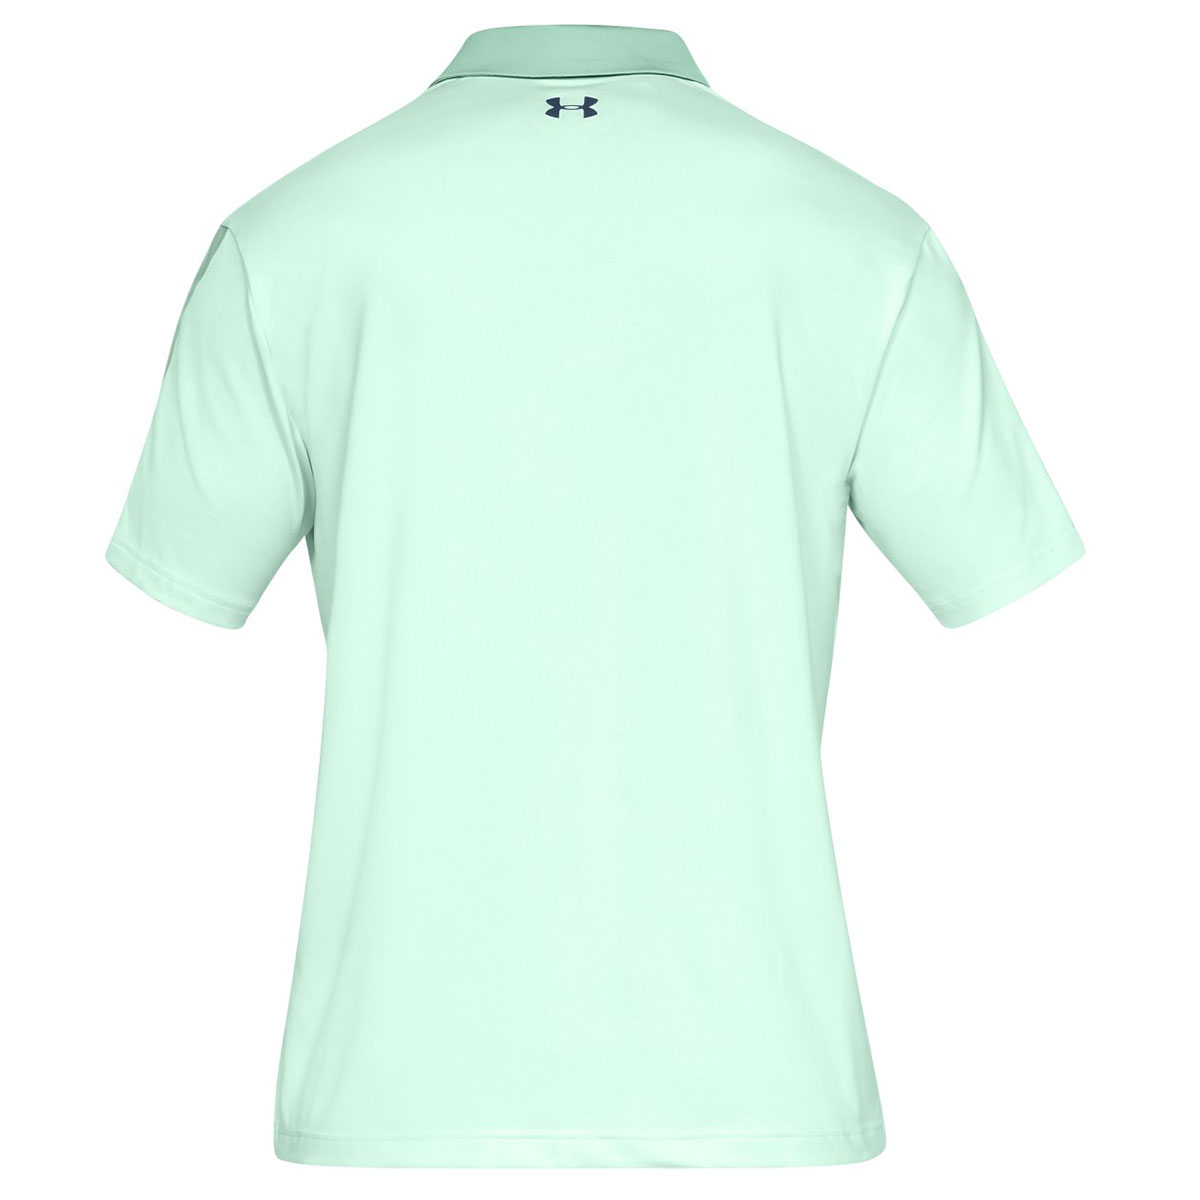 Under-Armour-Mens-2019-Playoff-Polo-2-0-Breathable-Light-Stretch-Polo-Shirt thumbnail 17